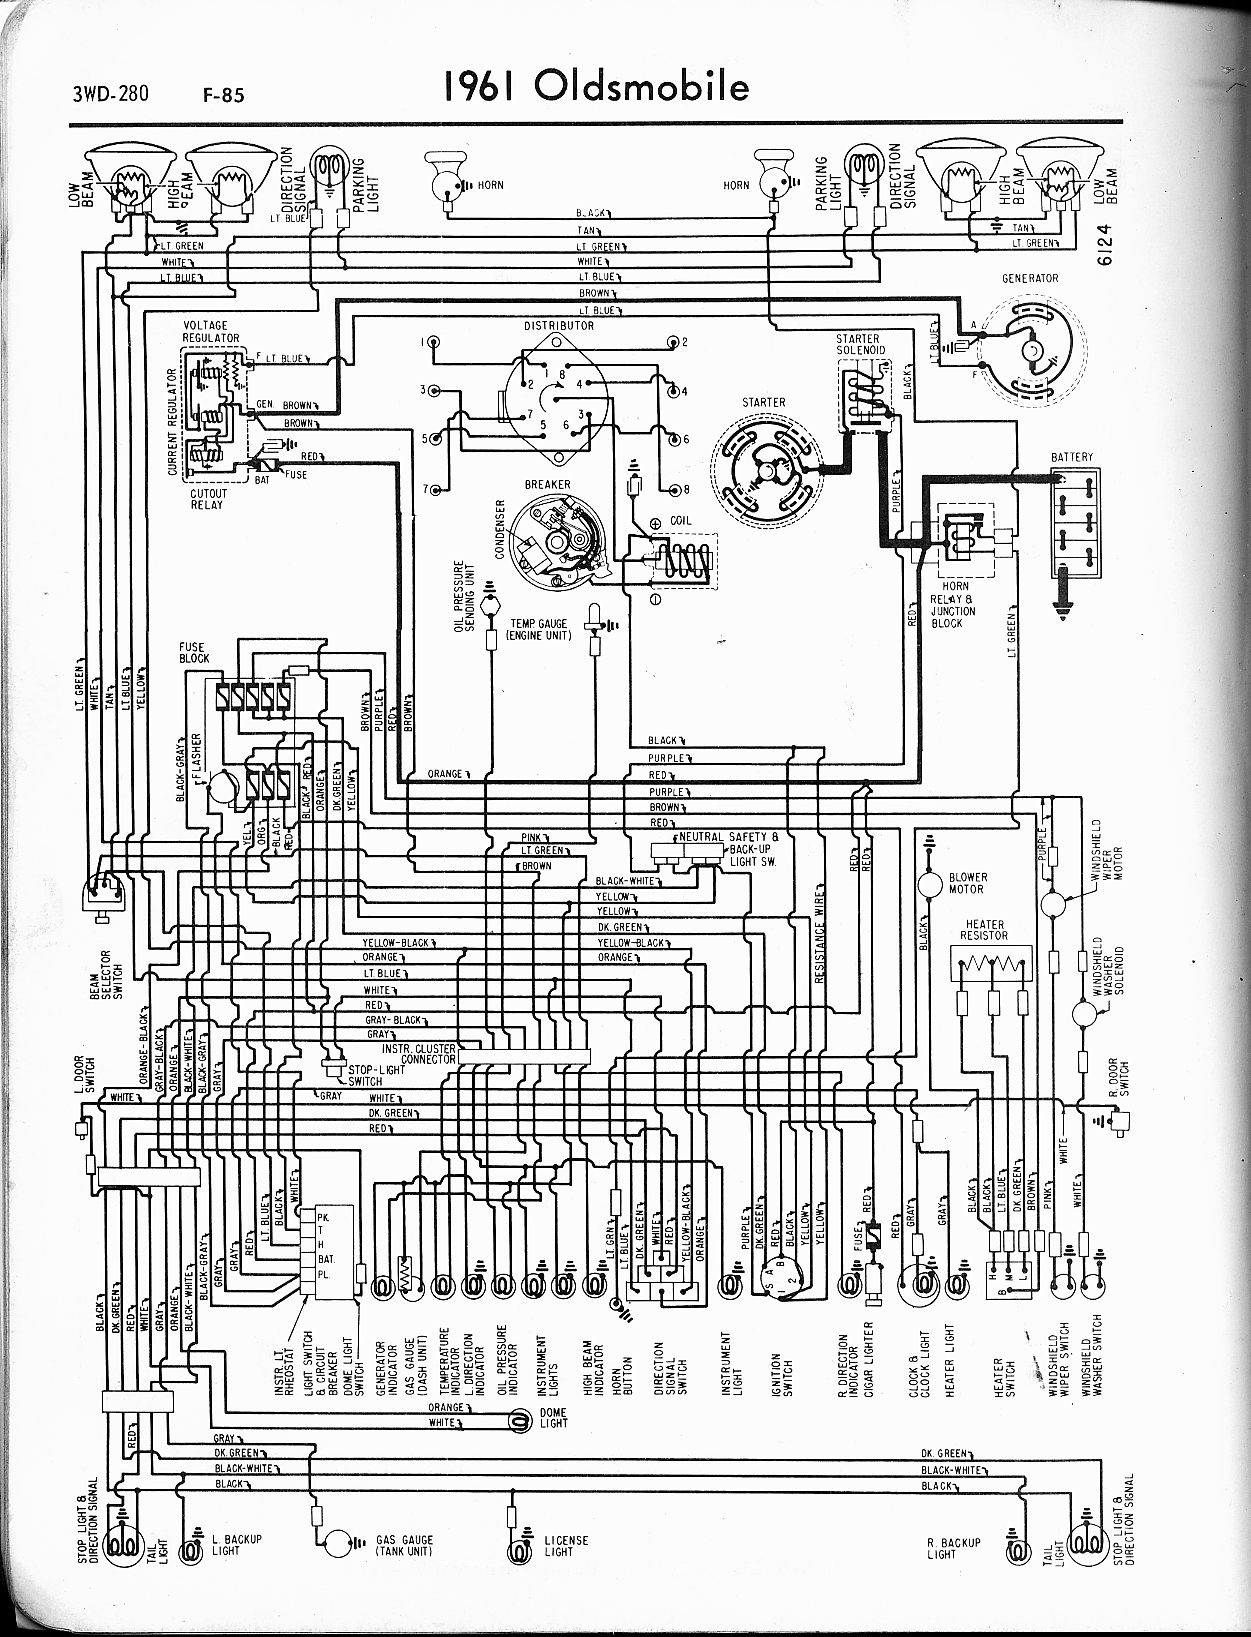 MWire5765 280 oldsmobile wiring diagrams the old car manual project Oldsmobile Aurora Power Steering Line at fashall.co